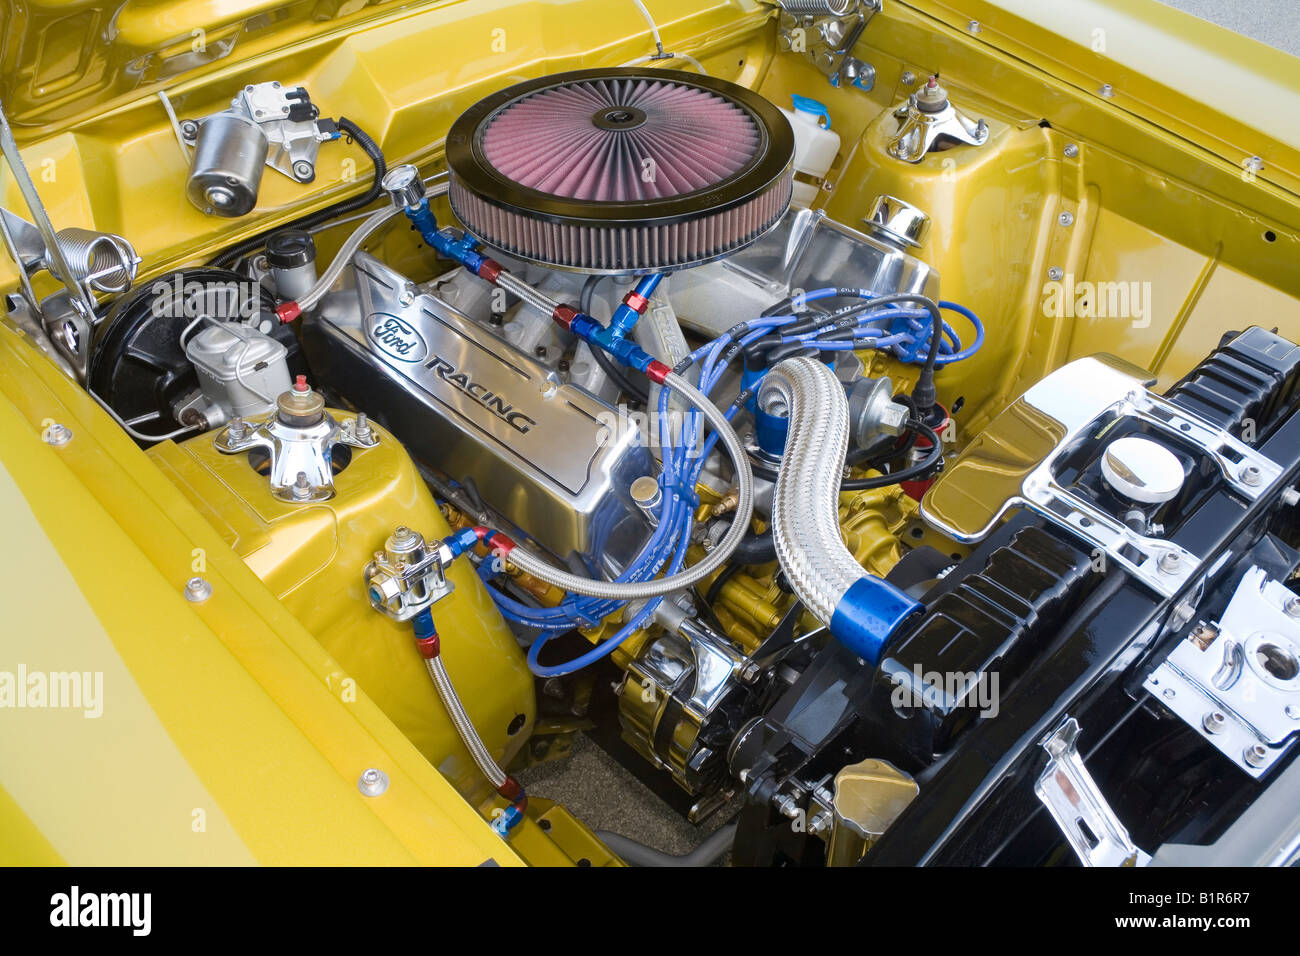 Modified And Custom Ford V8 Engine Used In A Modified Road